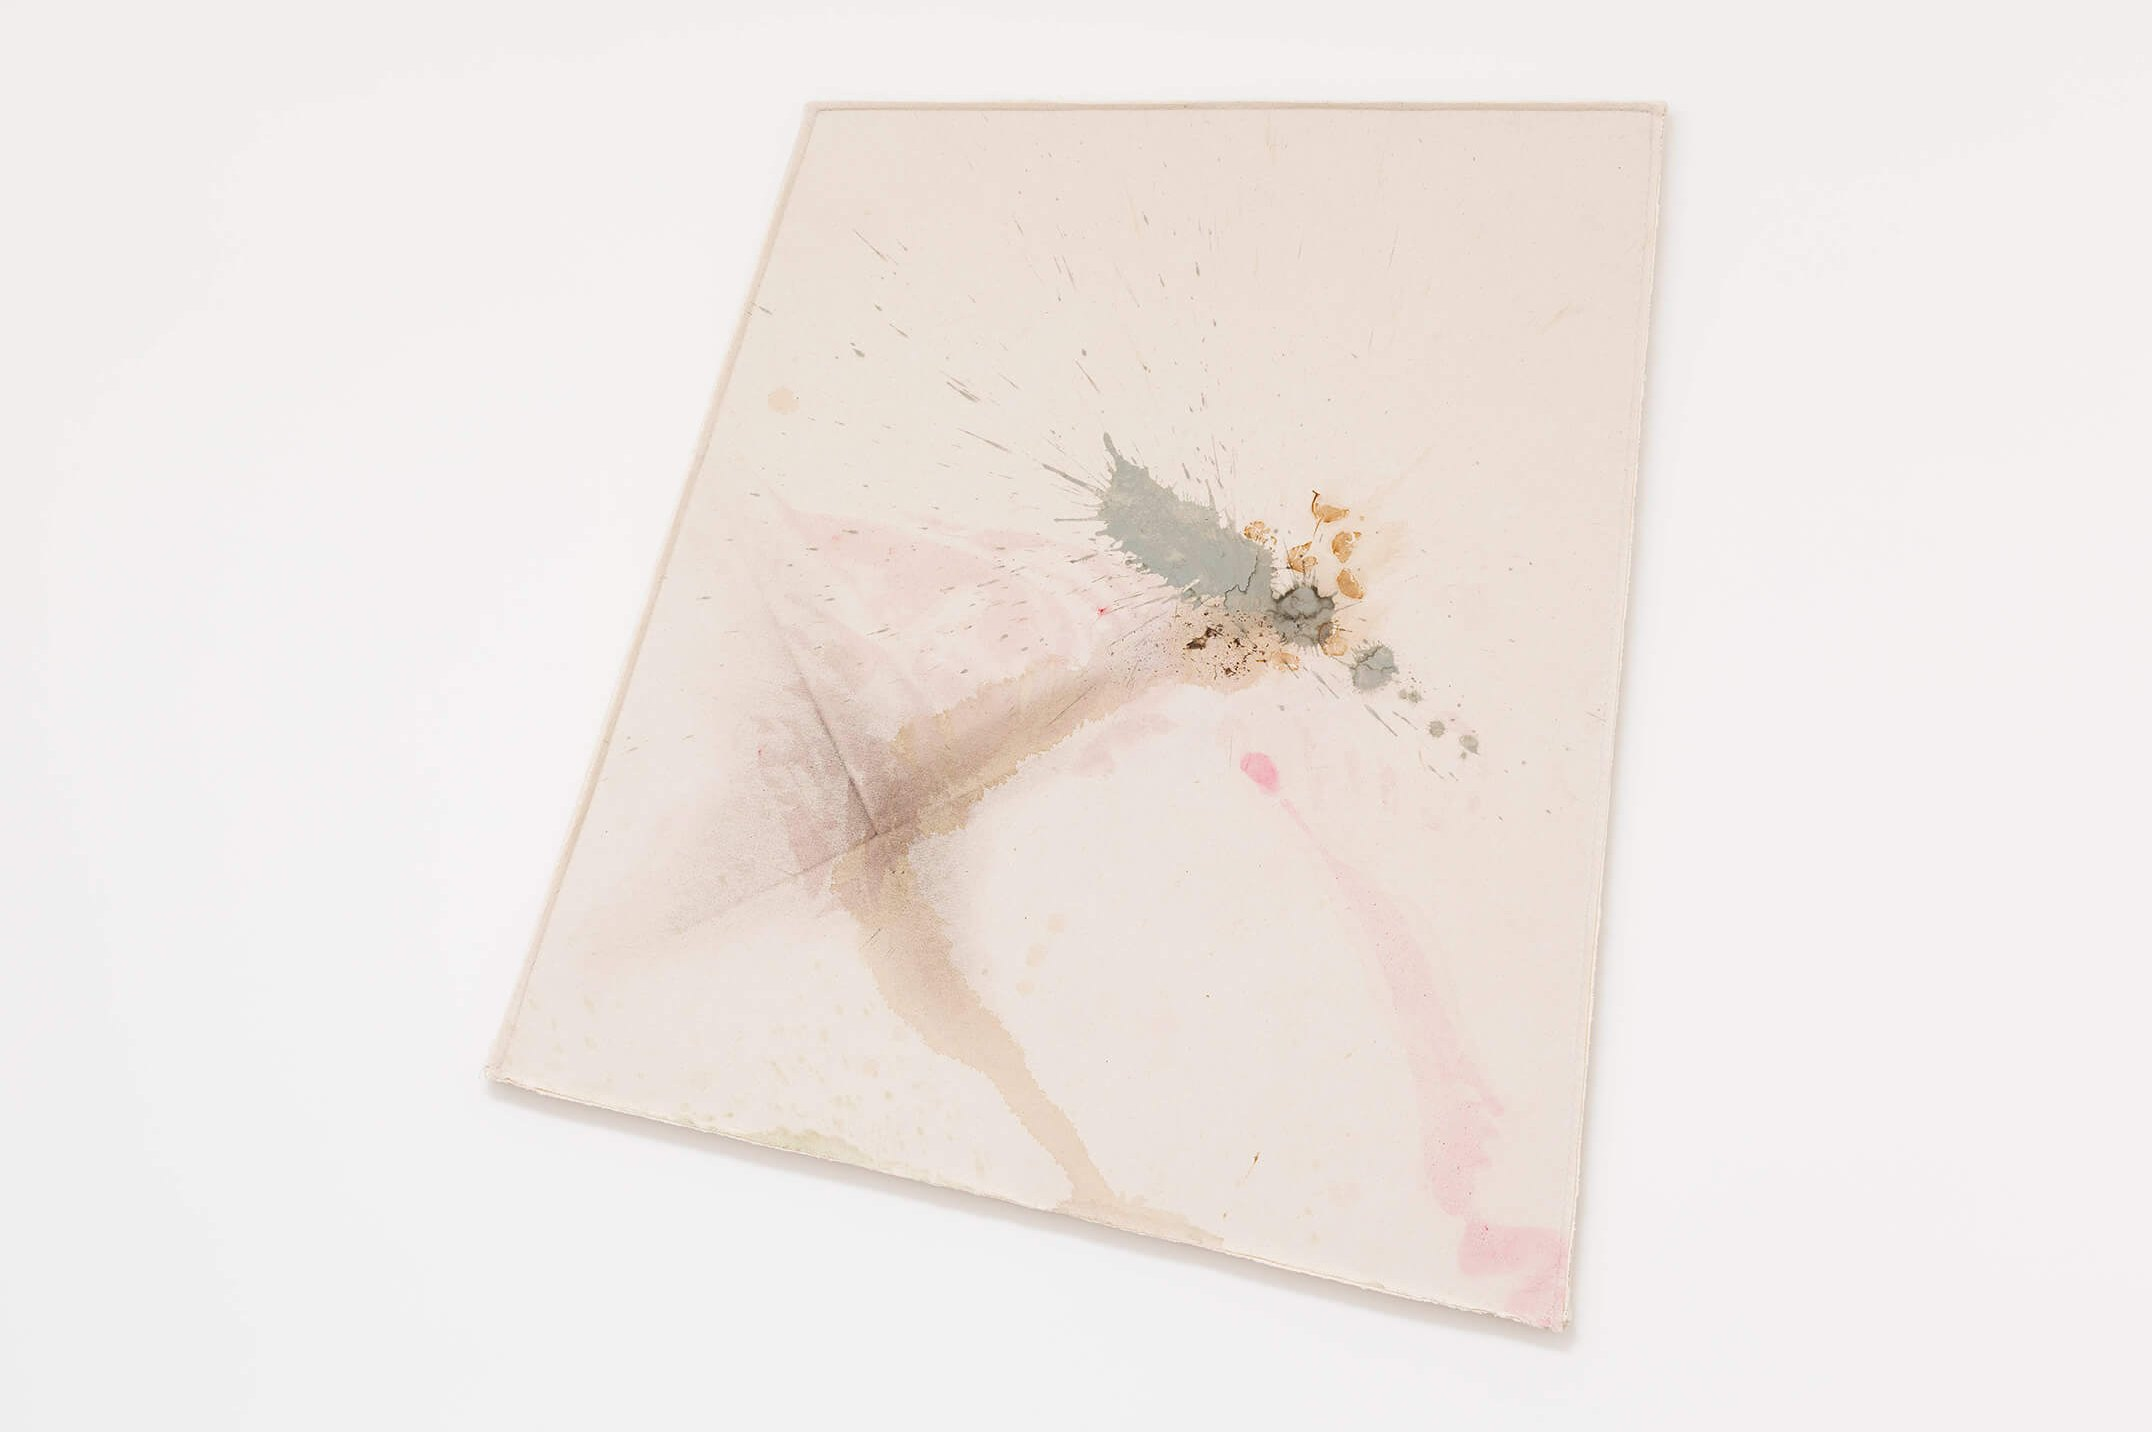 Lucy Dodd,&nbsp;<em>The Flight of the Passaro Sagrado, </em>2015,&nbsp;quarry hill river clay, Tetley's, foss leaf extract, Verona green earth and mixed pigments on canvas, 124 × 139 × 4 cm - Mendes Wood DM